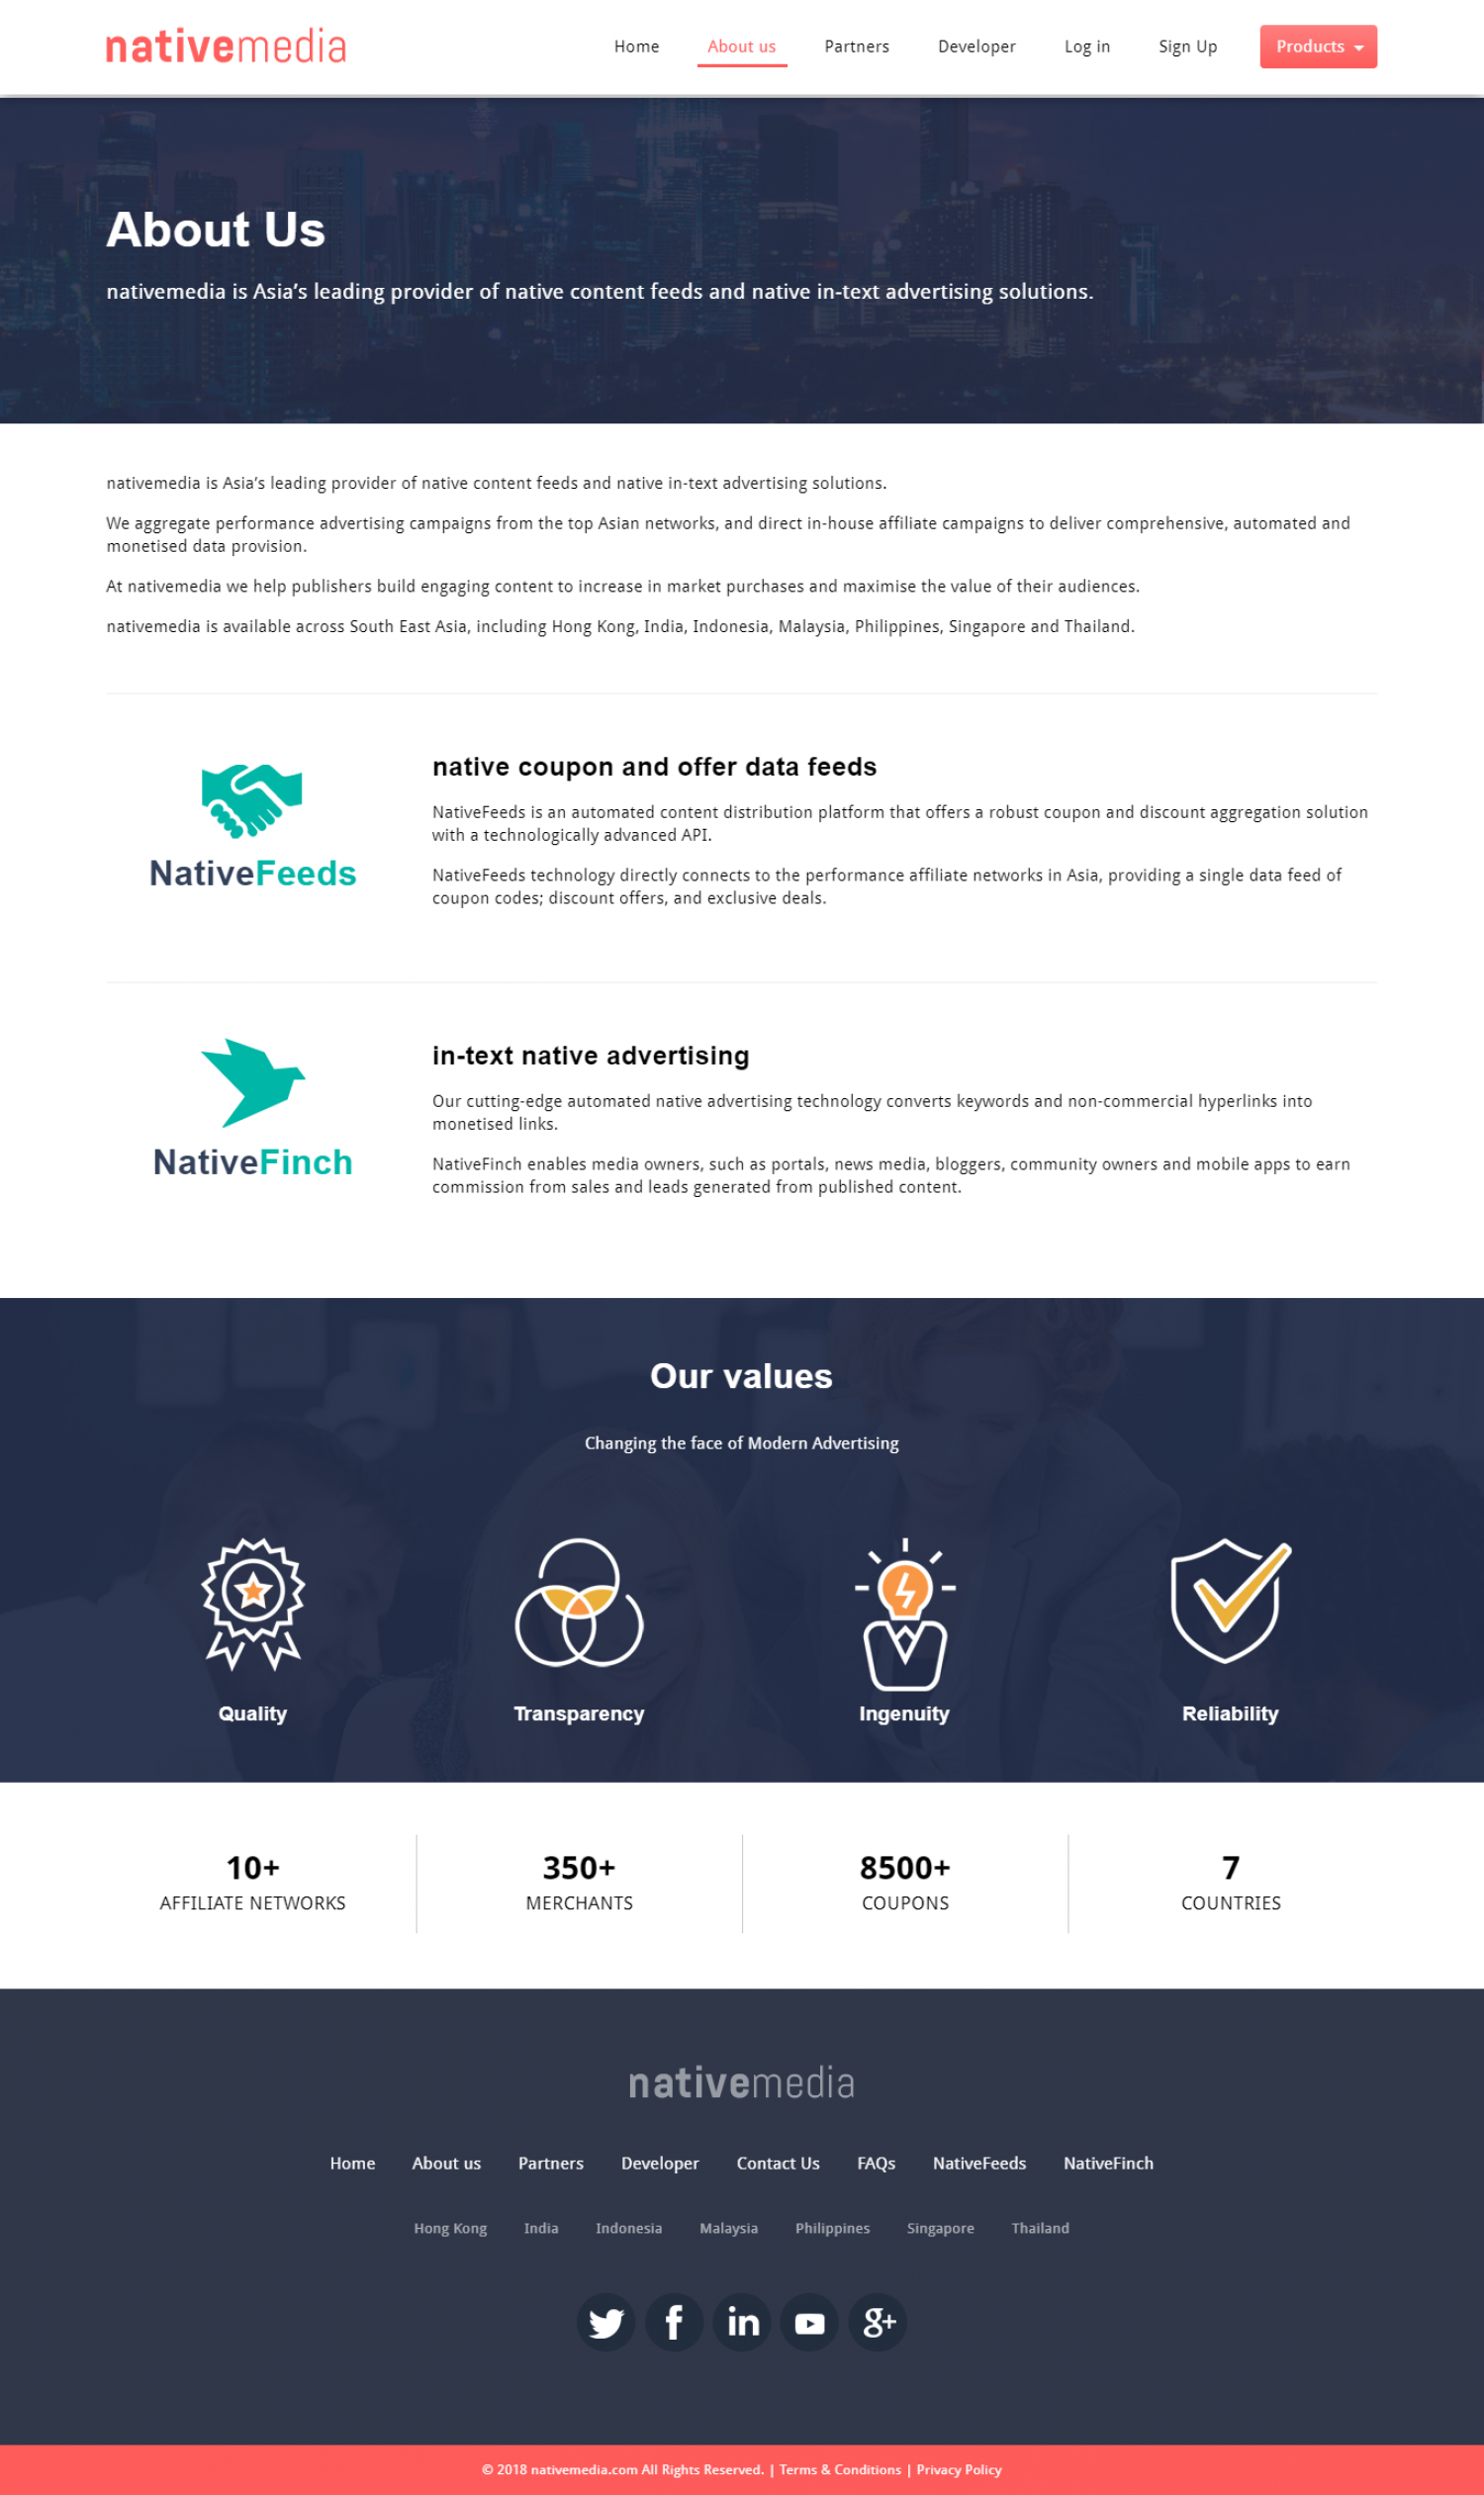 NativeMedia - Coupon Data API Provider for Websites Infographic